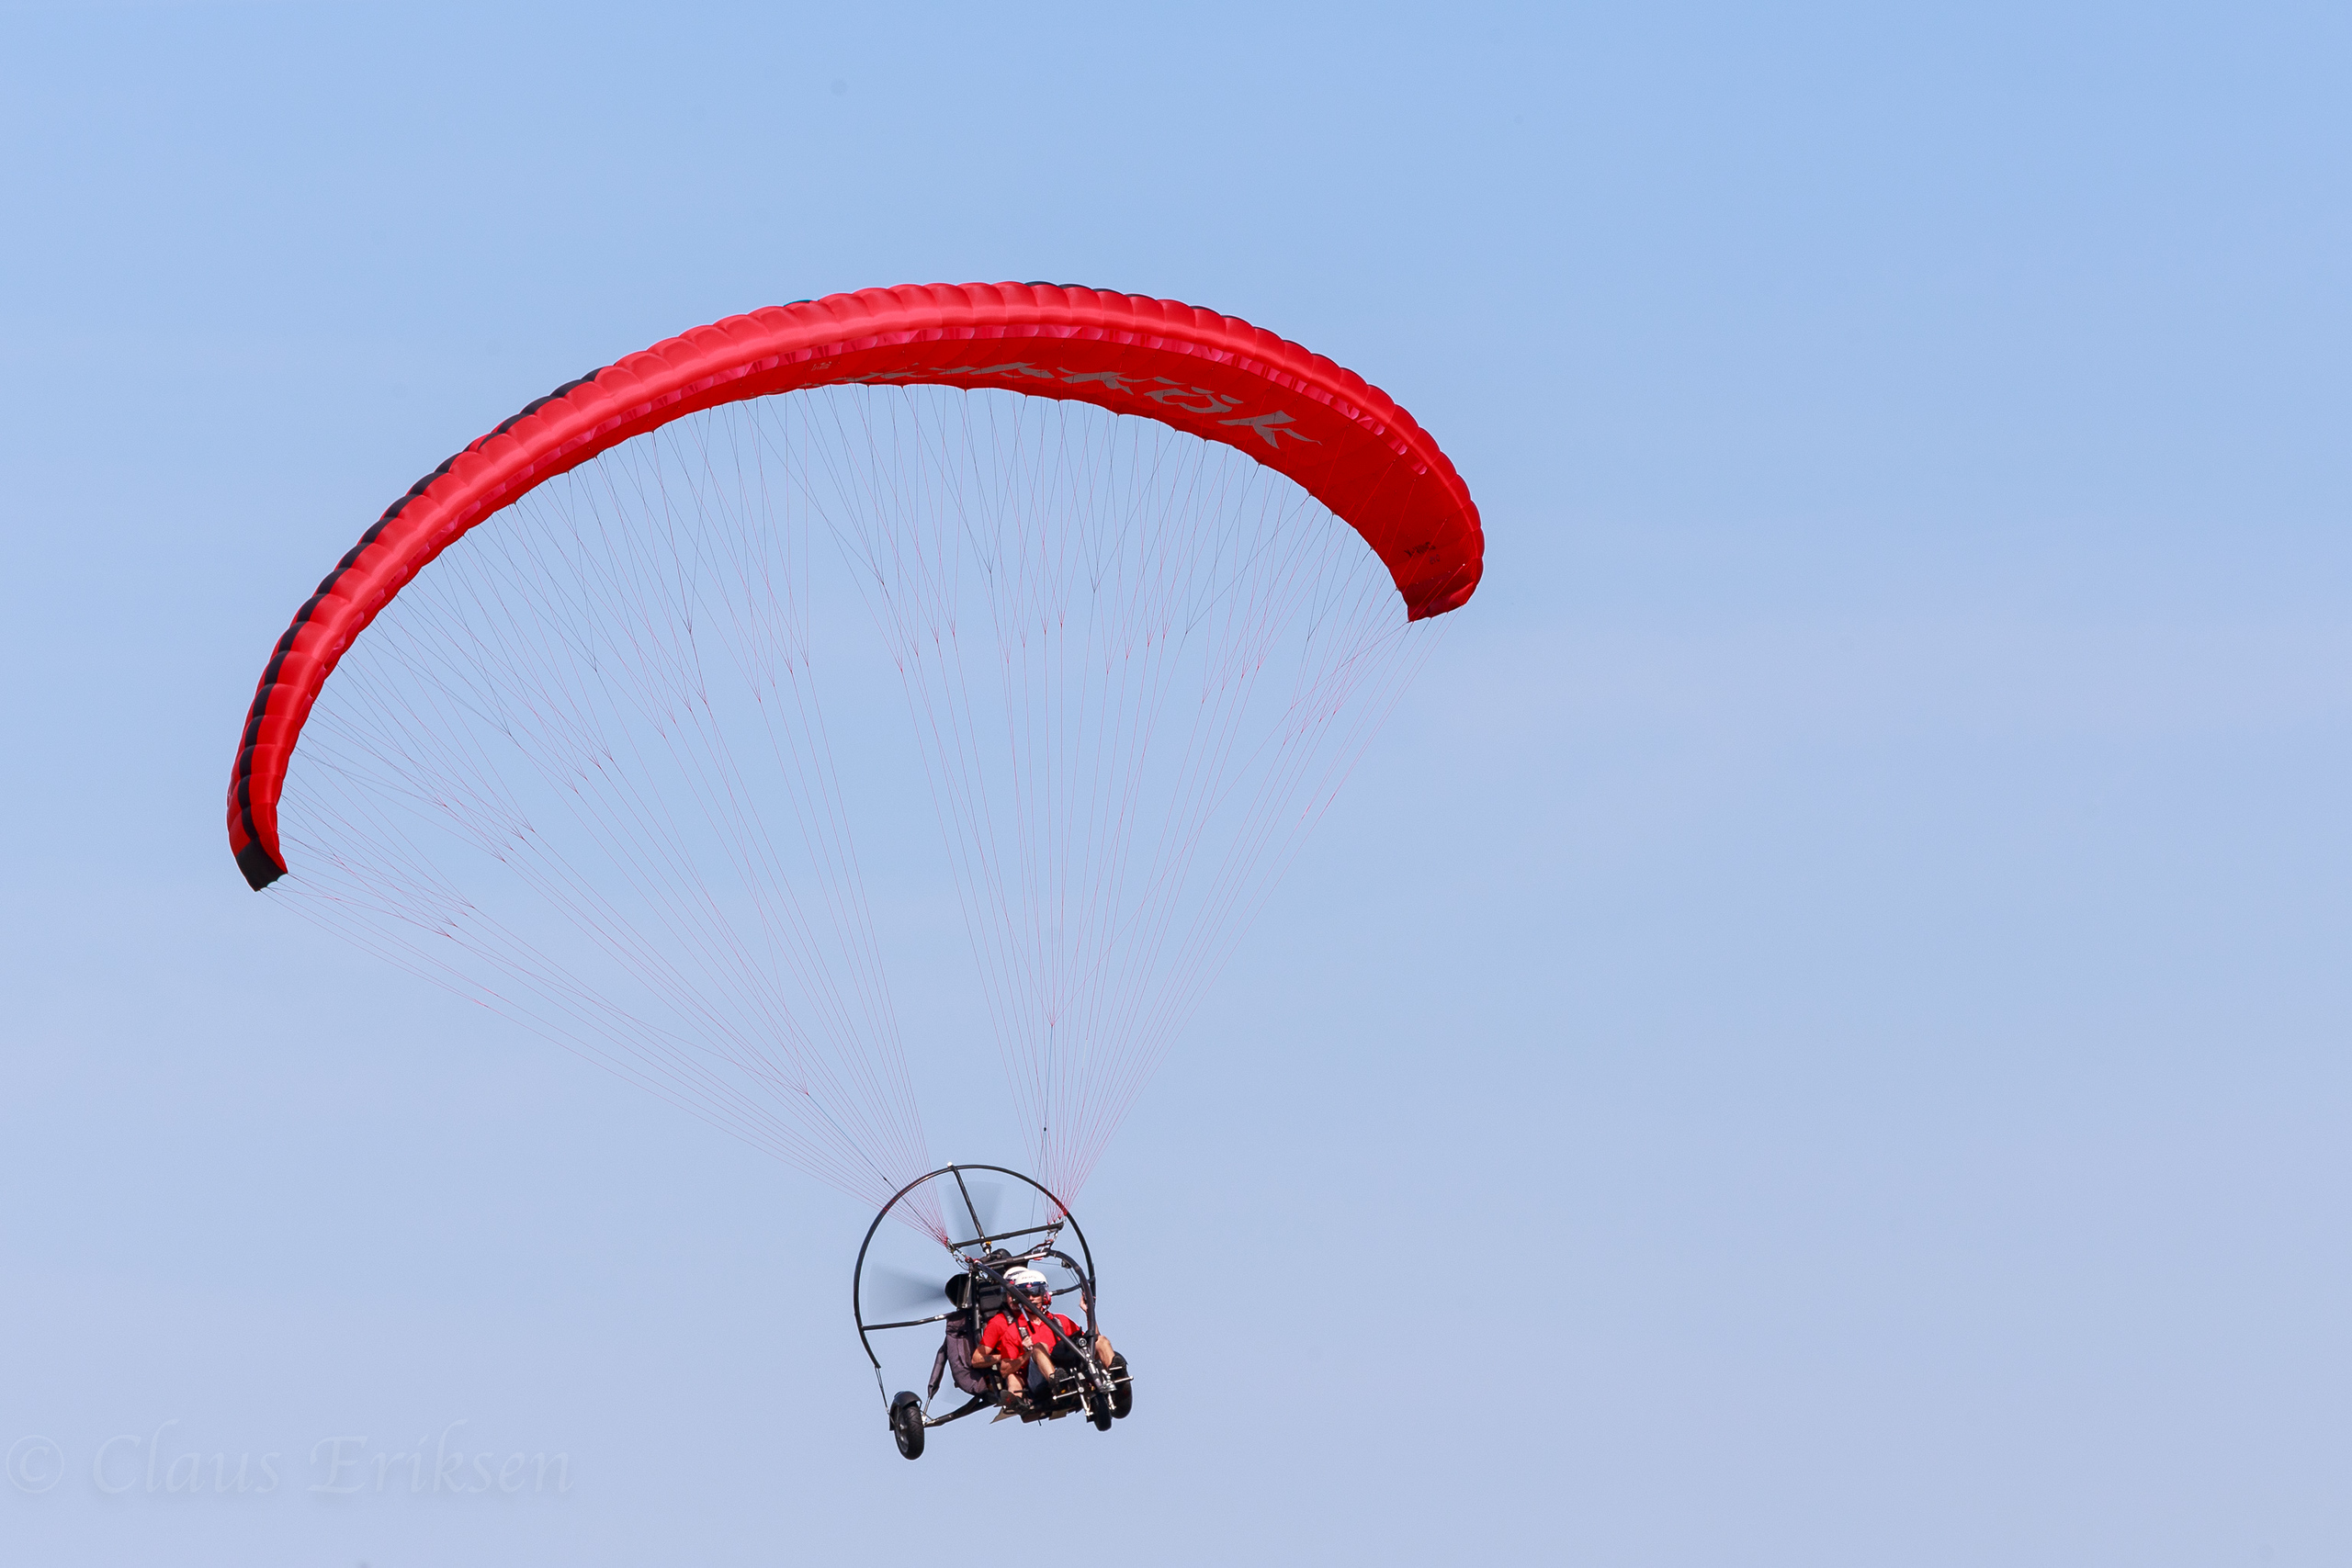 Advanced paraglider